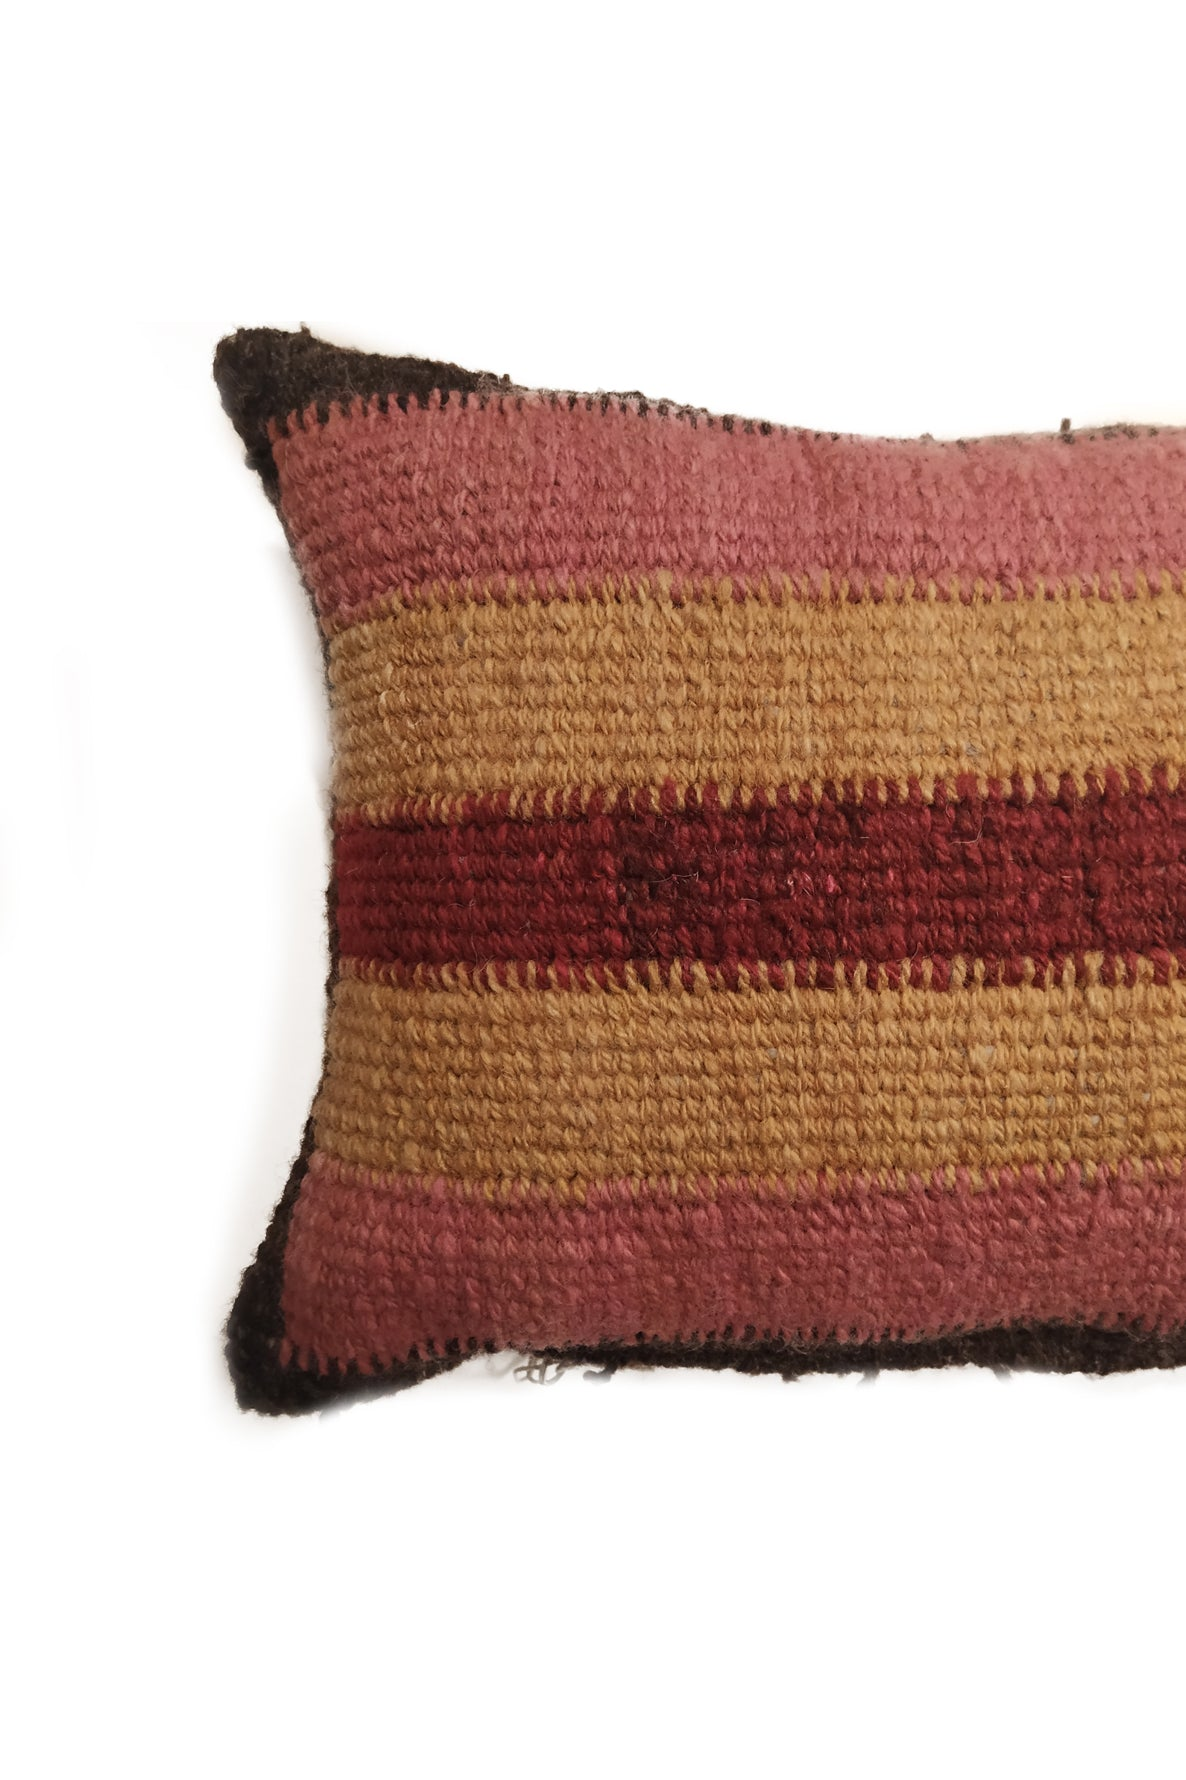 Close up of Black, Pink, Orange, and Red Striped Tapestry Wool Cushion.